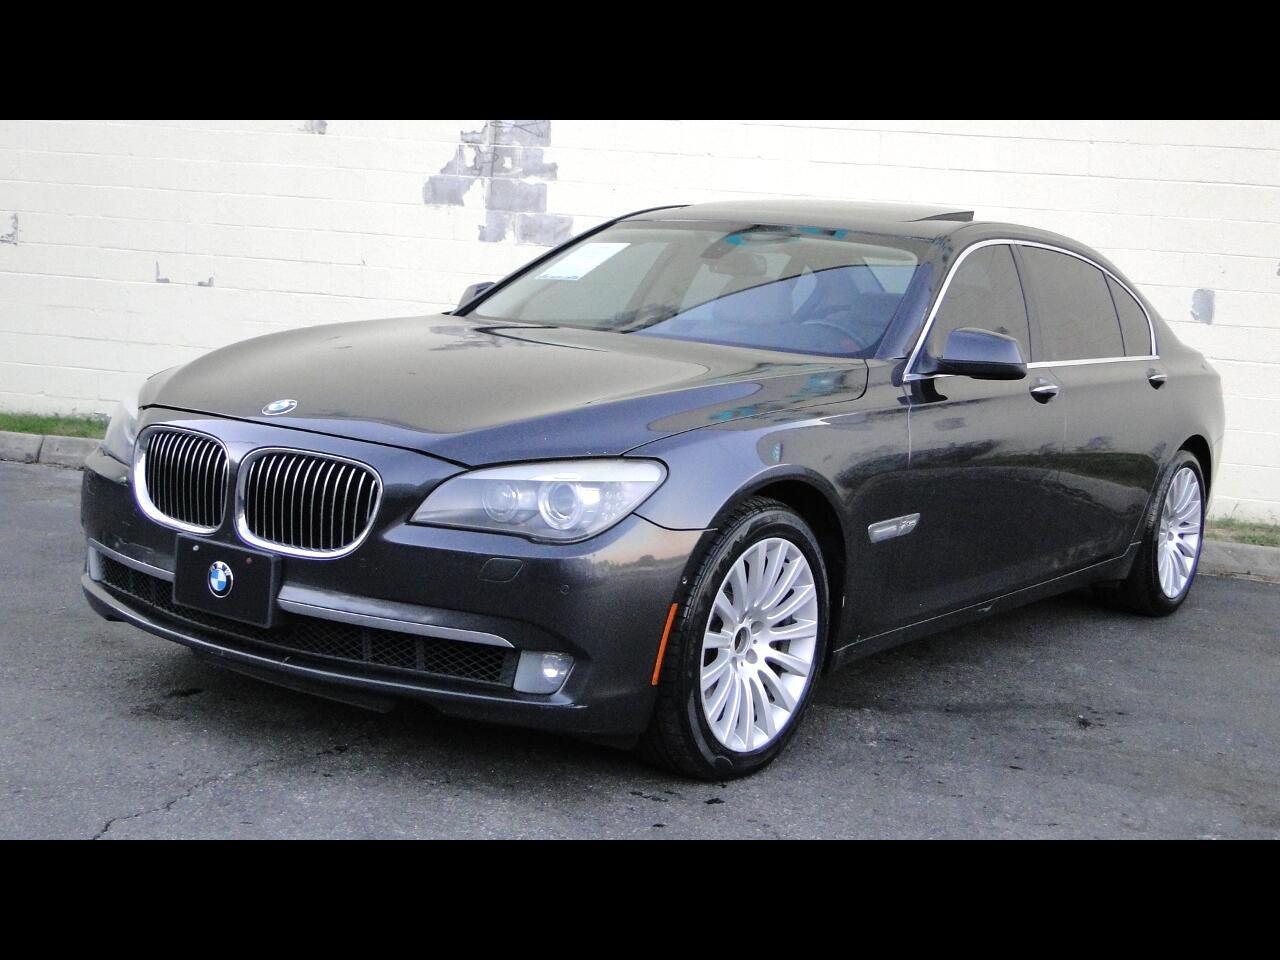 BMW 7-Series 750Li xDrive 2010